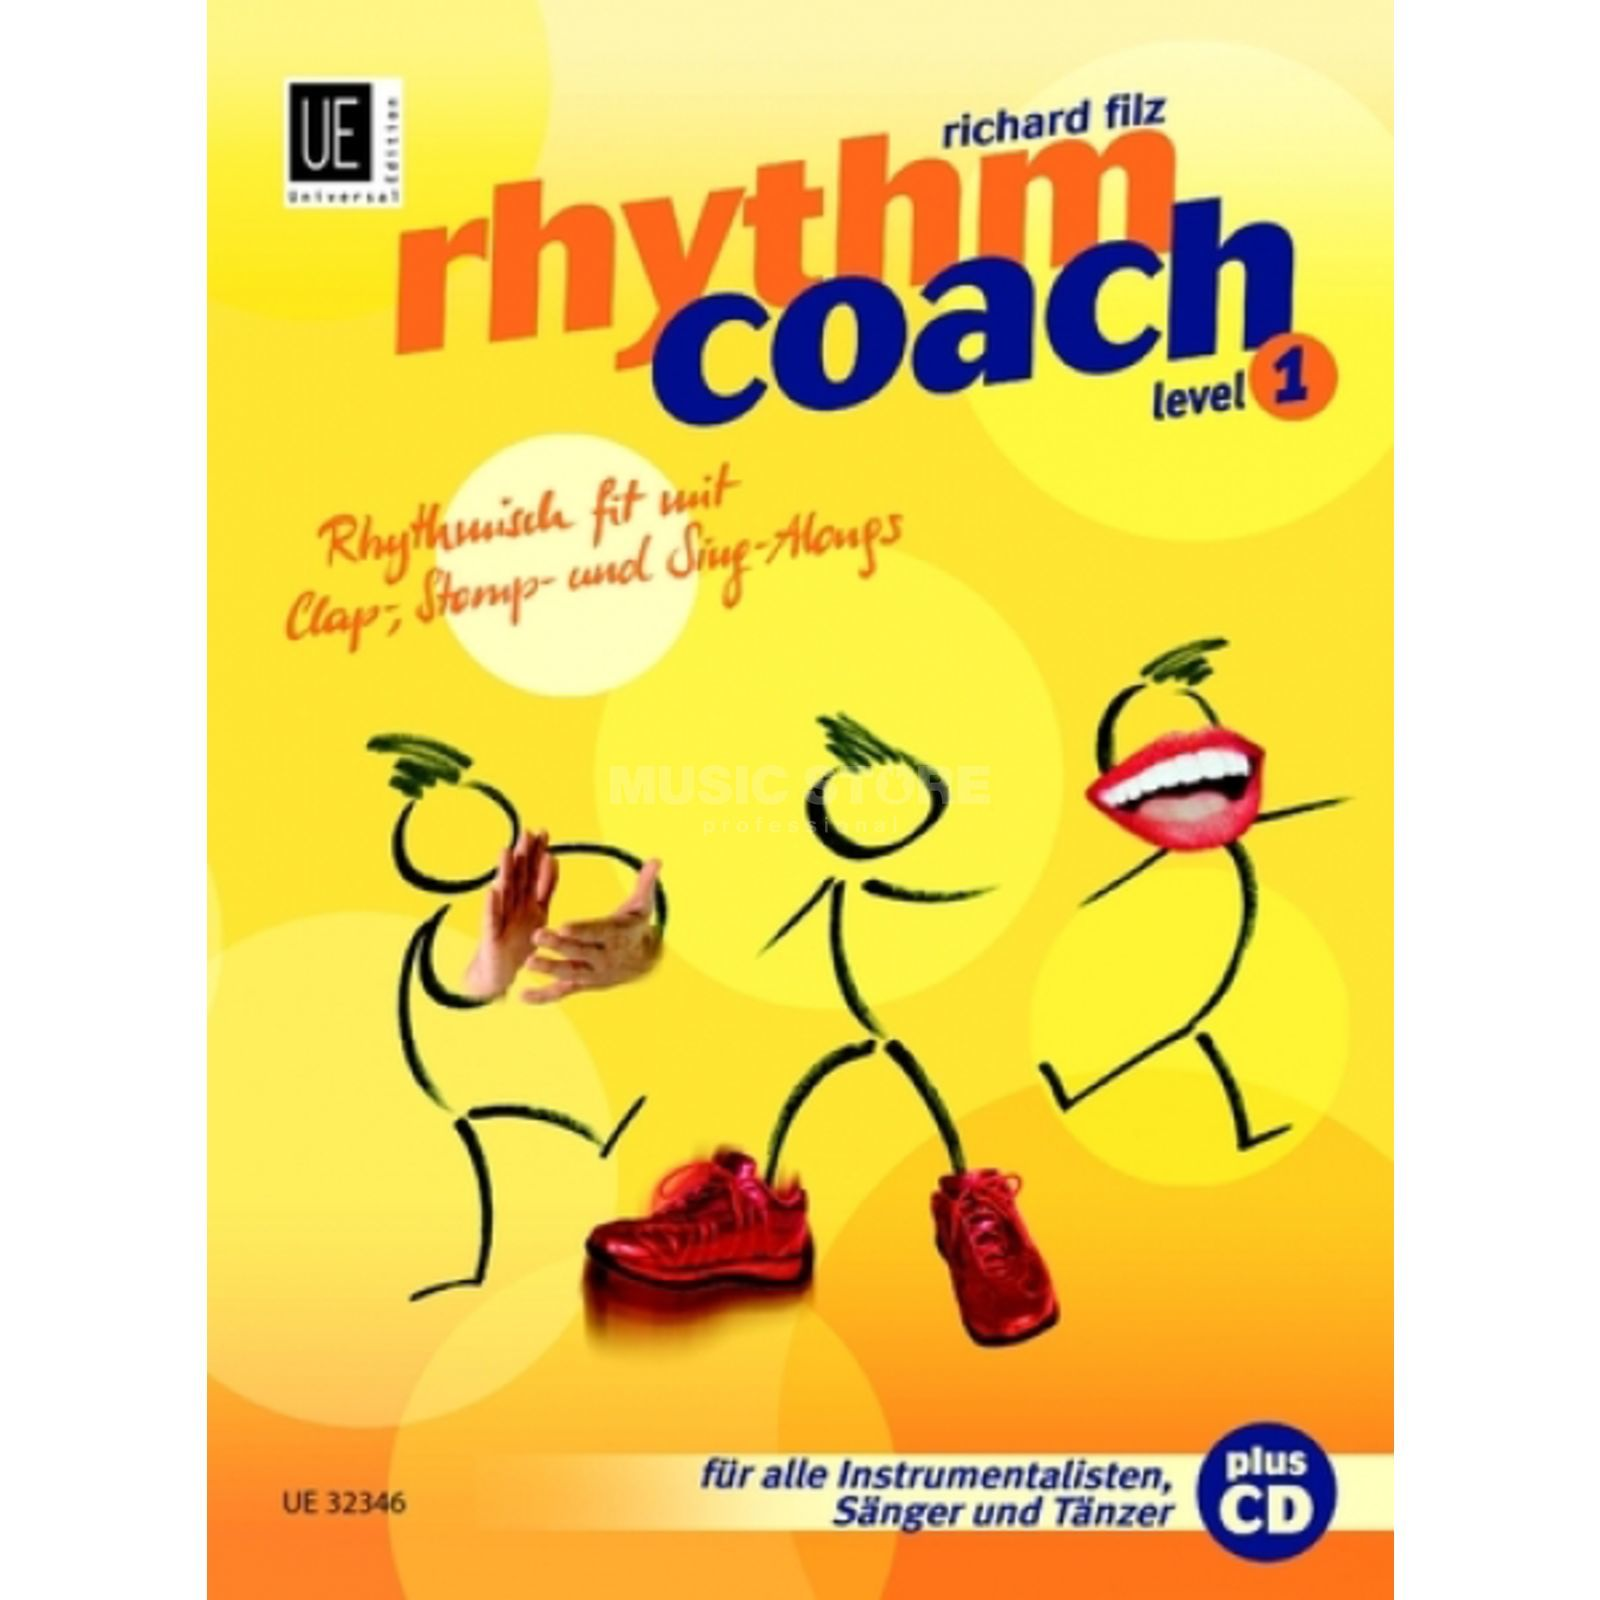 Universal Edition Rhythm Coach 1 mit CD Filz, Buch/CD Product Image